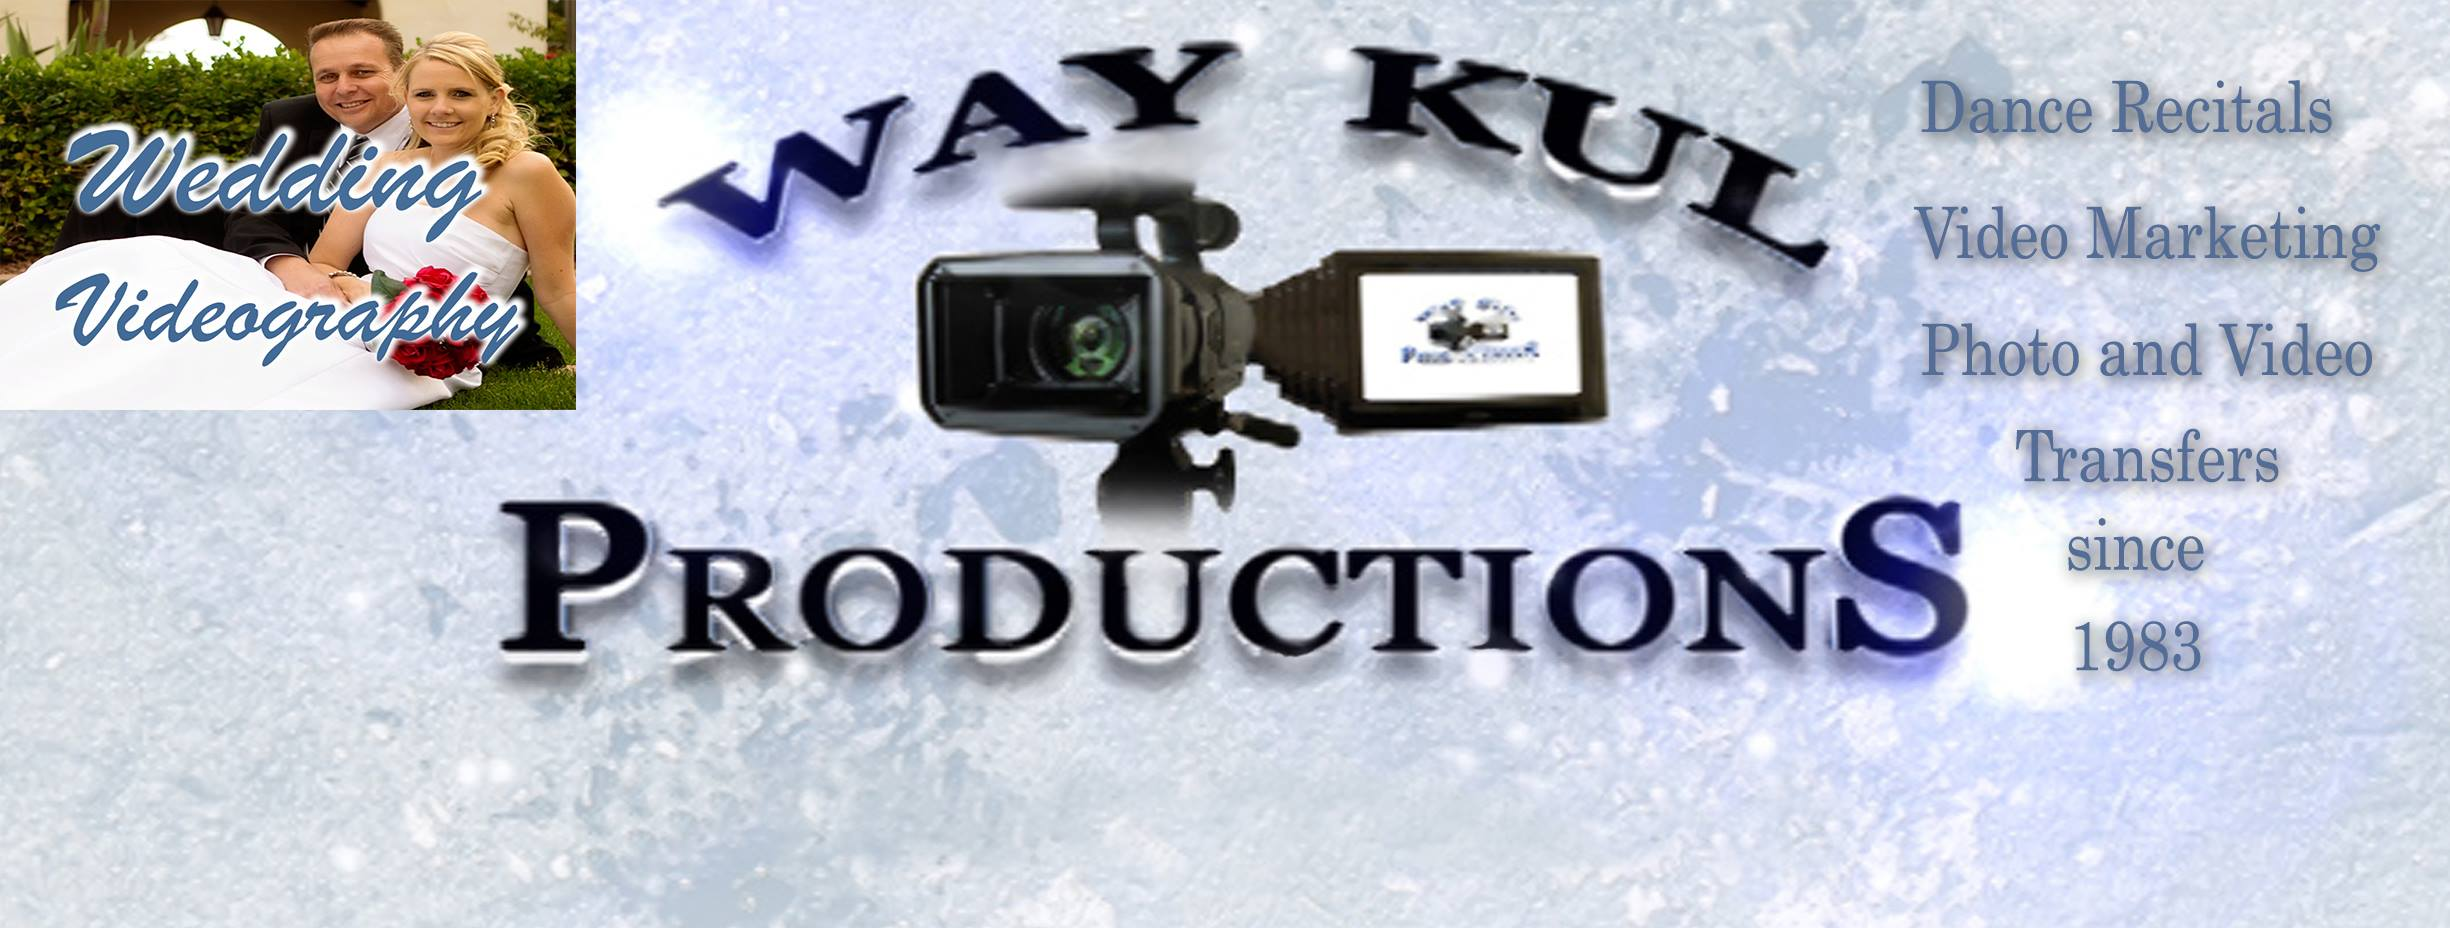 Way Kul Productions.jpg